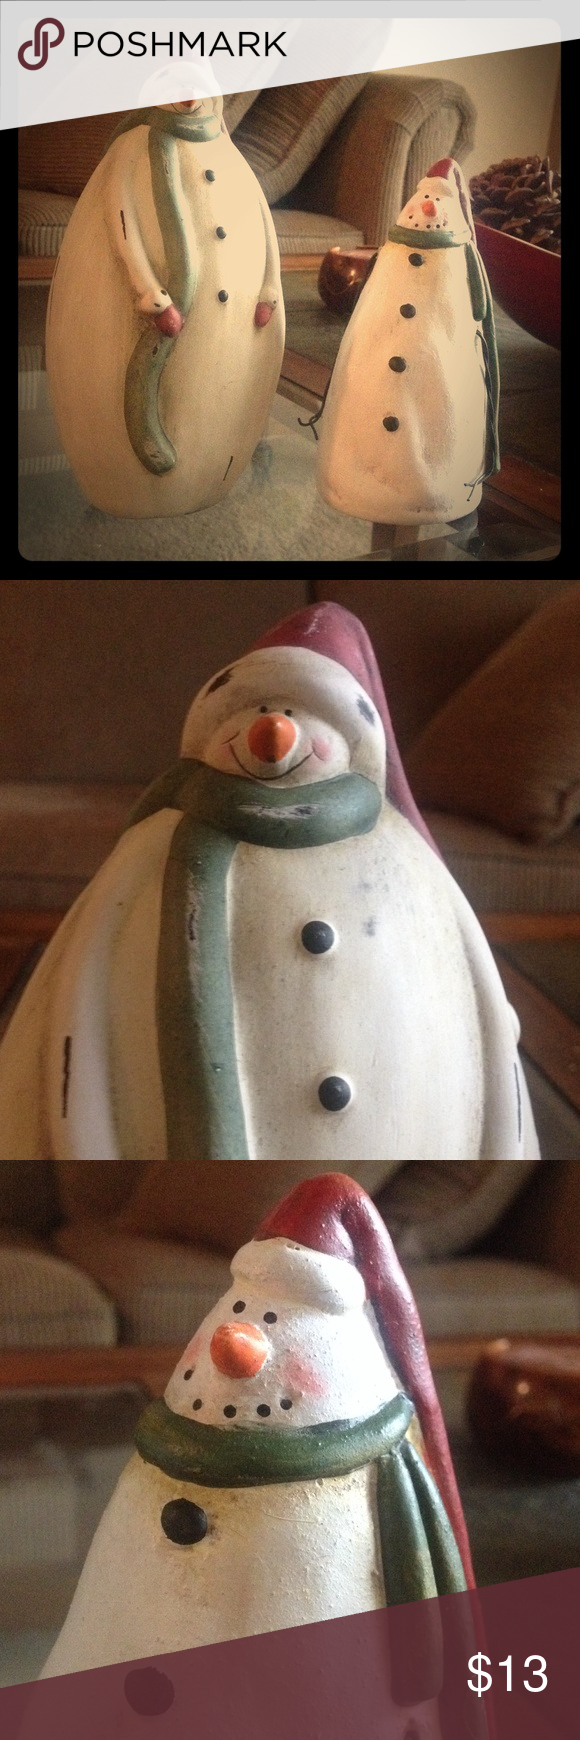 "Snowman Decor Set Ceramic snowman set. Like new with no chips or cracks. 7.5 and 6"" tall. Smoke and animal free home. Other"